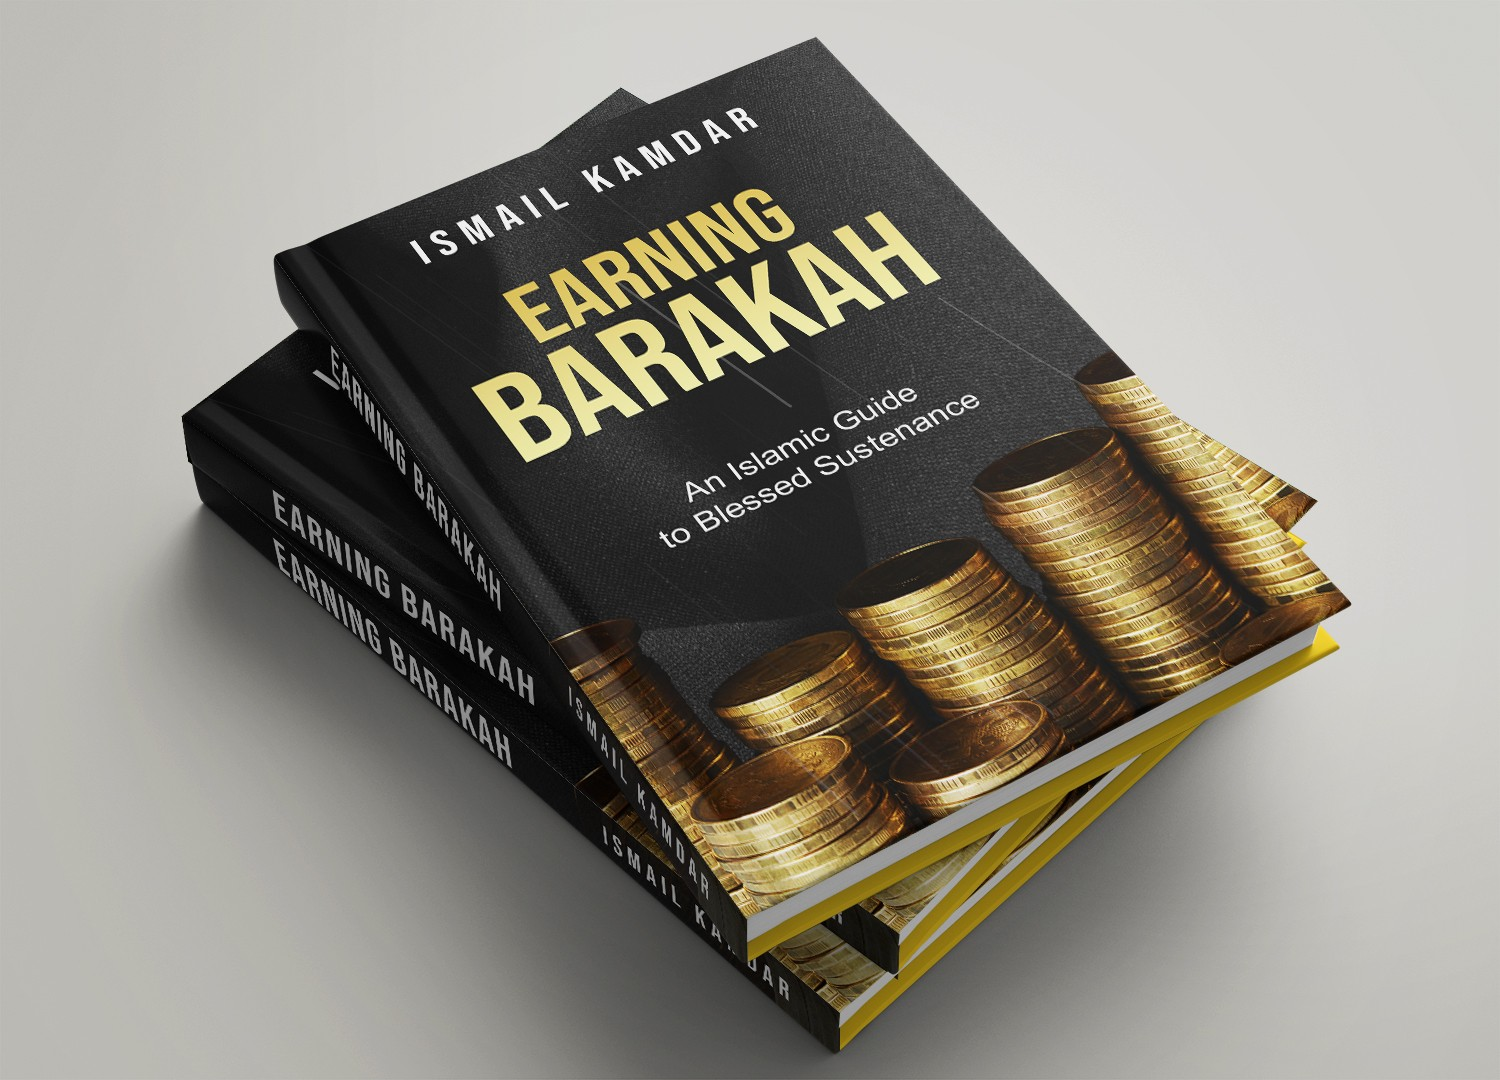 New Book Launched: Earning Barakah